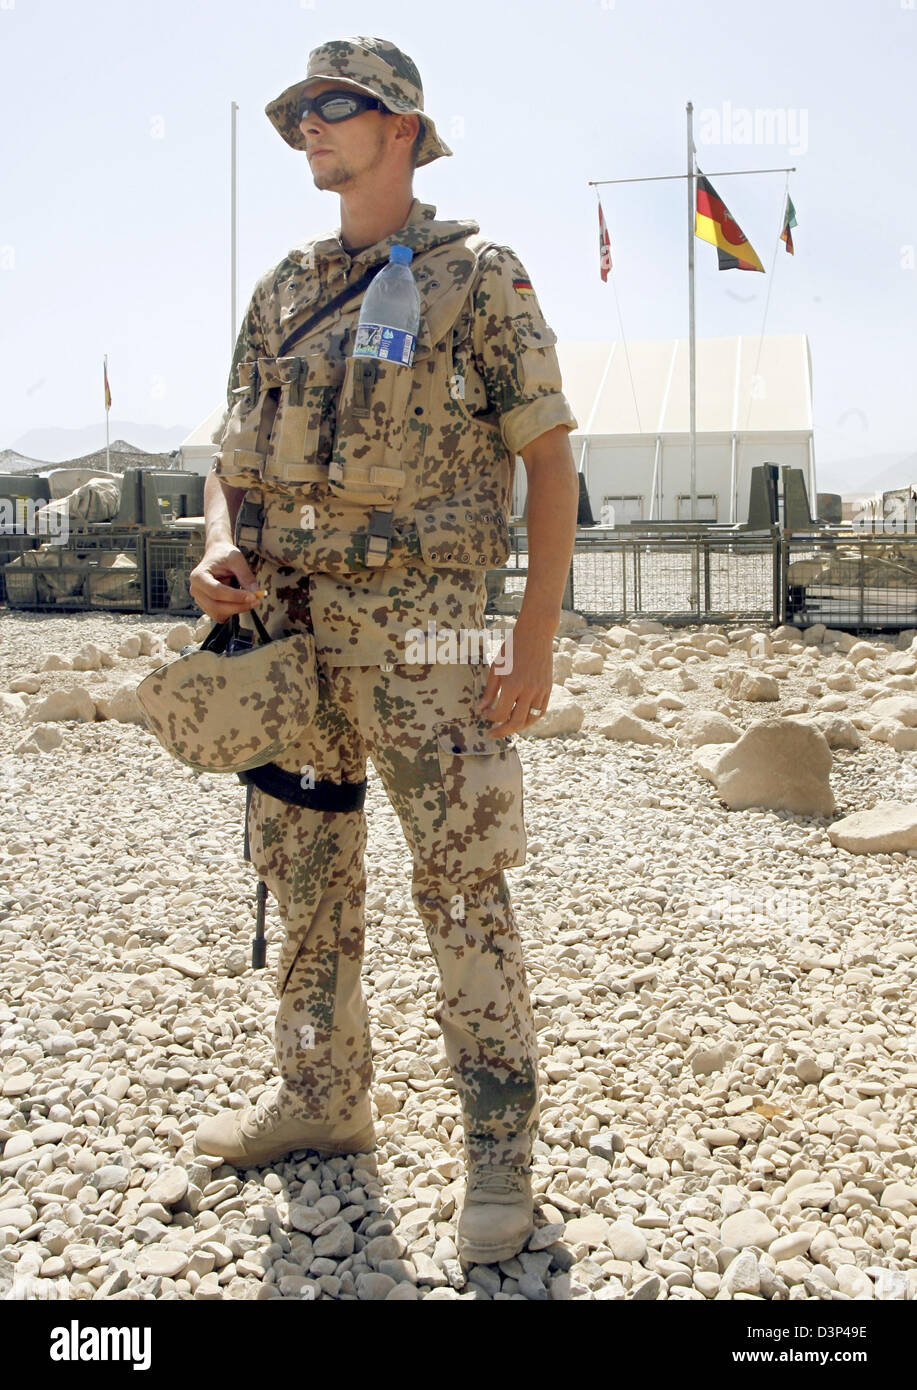 A German Bundeswehr soldier of the Provincial Reconstruction Team (PRT) shown in Masar-i-Scharif, northern Afghanistan, - Stock Image